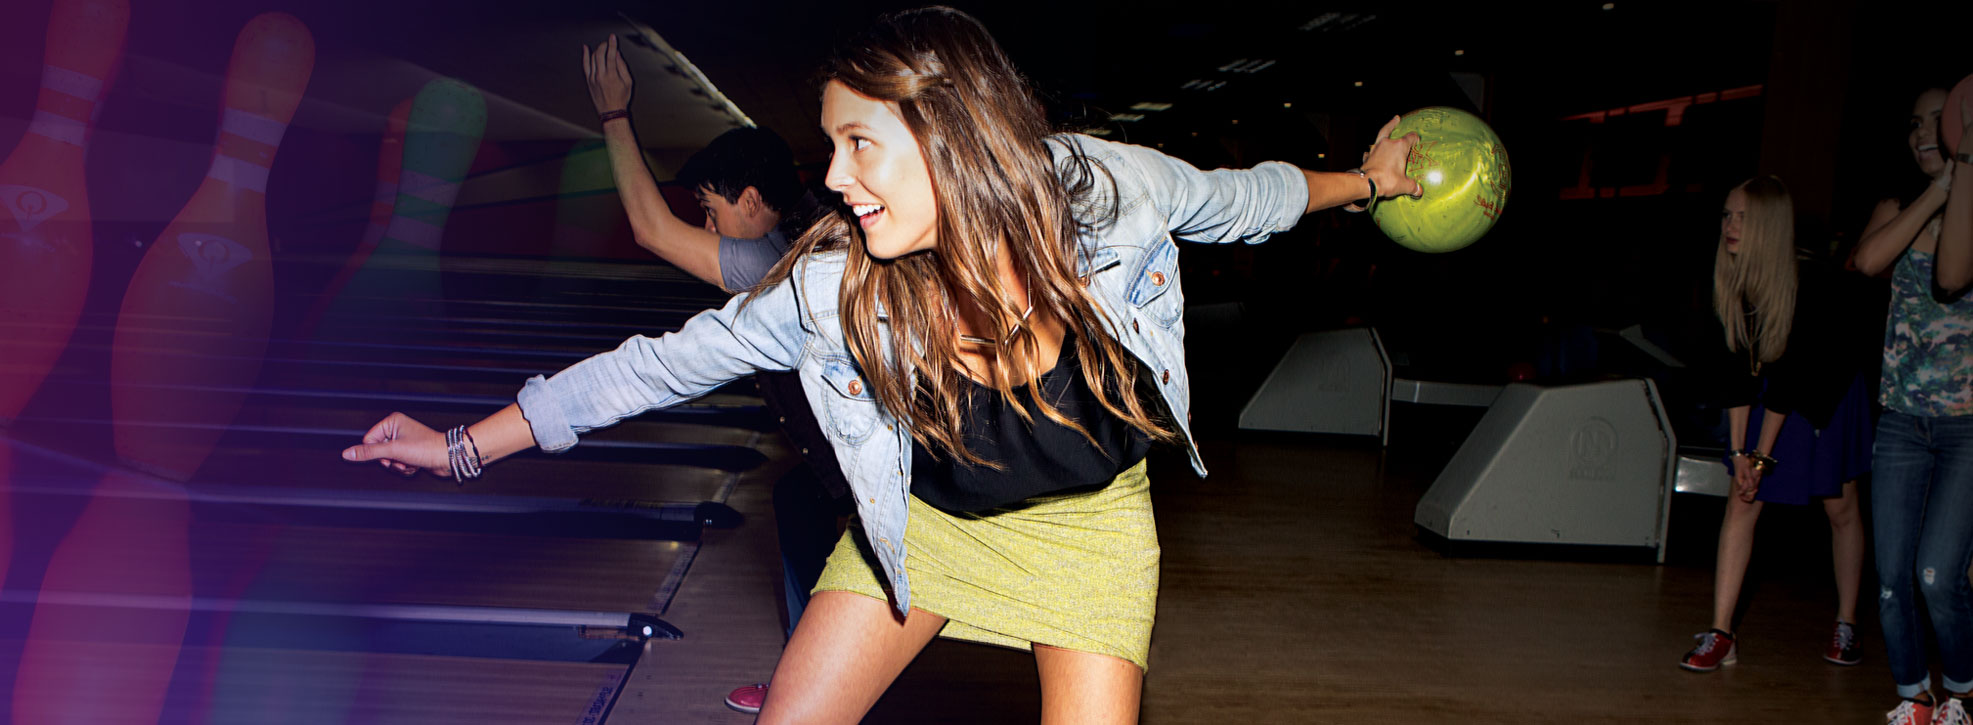 Action shot of young woman bowling